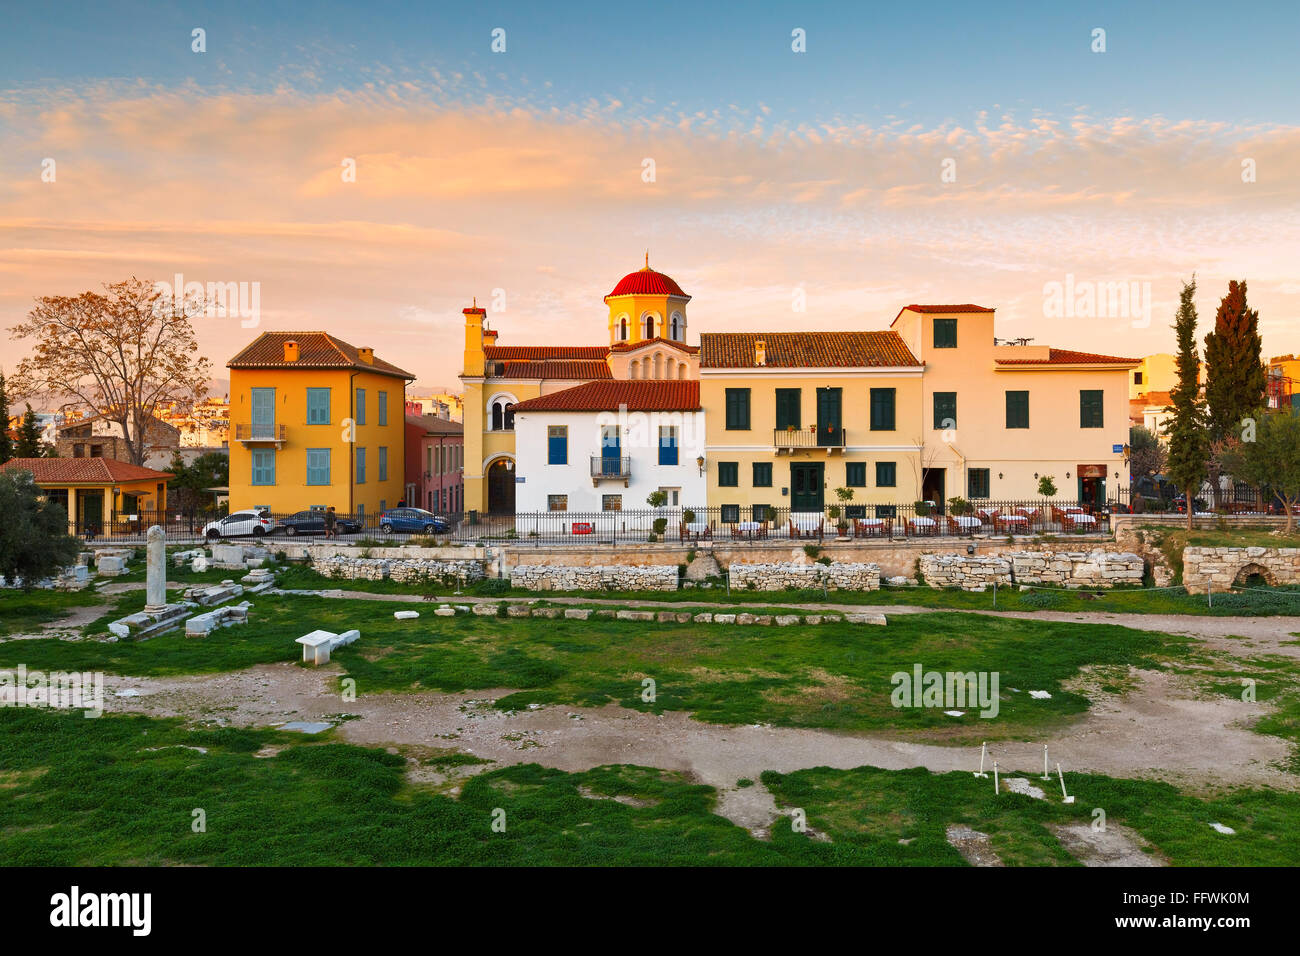 Remains of the Roman Agora and houses in the old town of Athens, Greece. - Stock Image